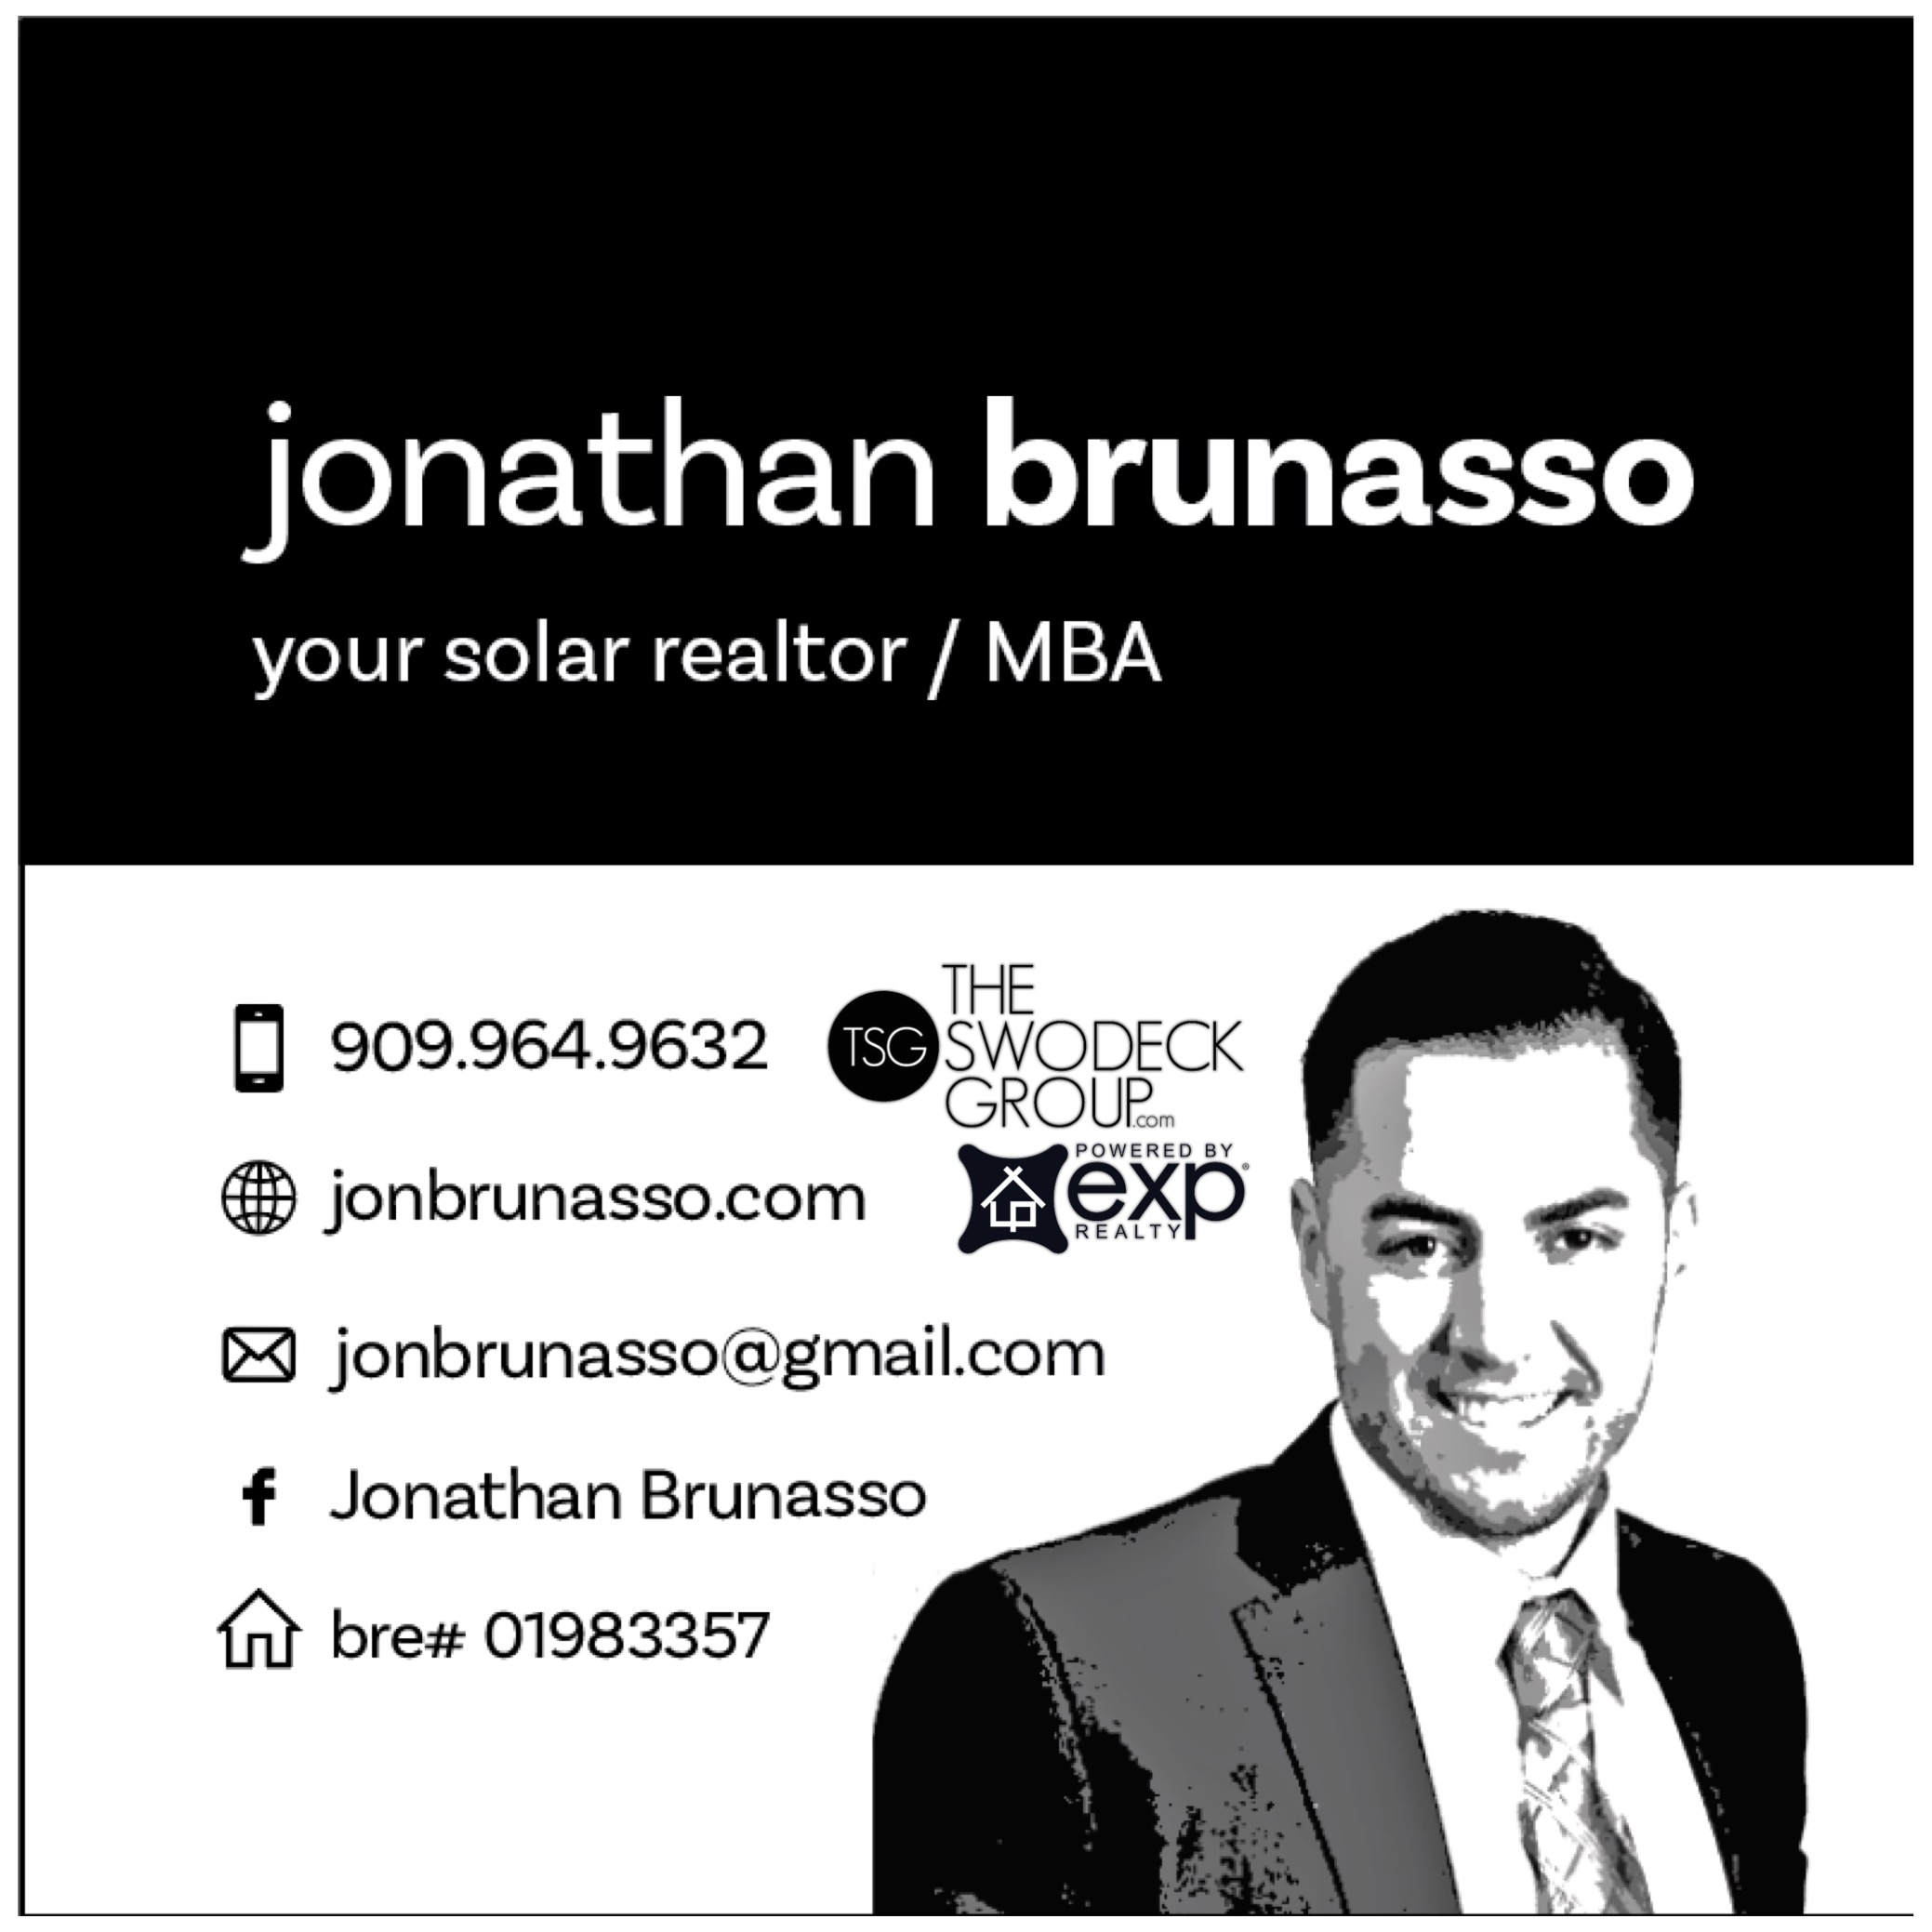 REAL ESTATE & SOLAR - CHECK OUT MY LATEST SOLAR VIDEO: YOUTUBECHECK OUT MY LATEST REAL ESTATE VIDEO: YOUTUBE